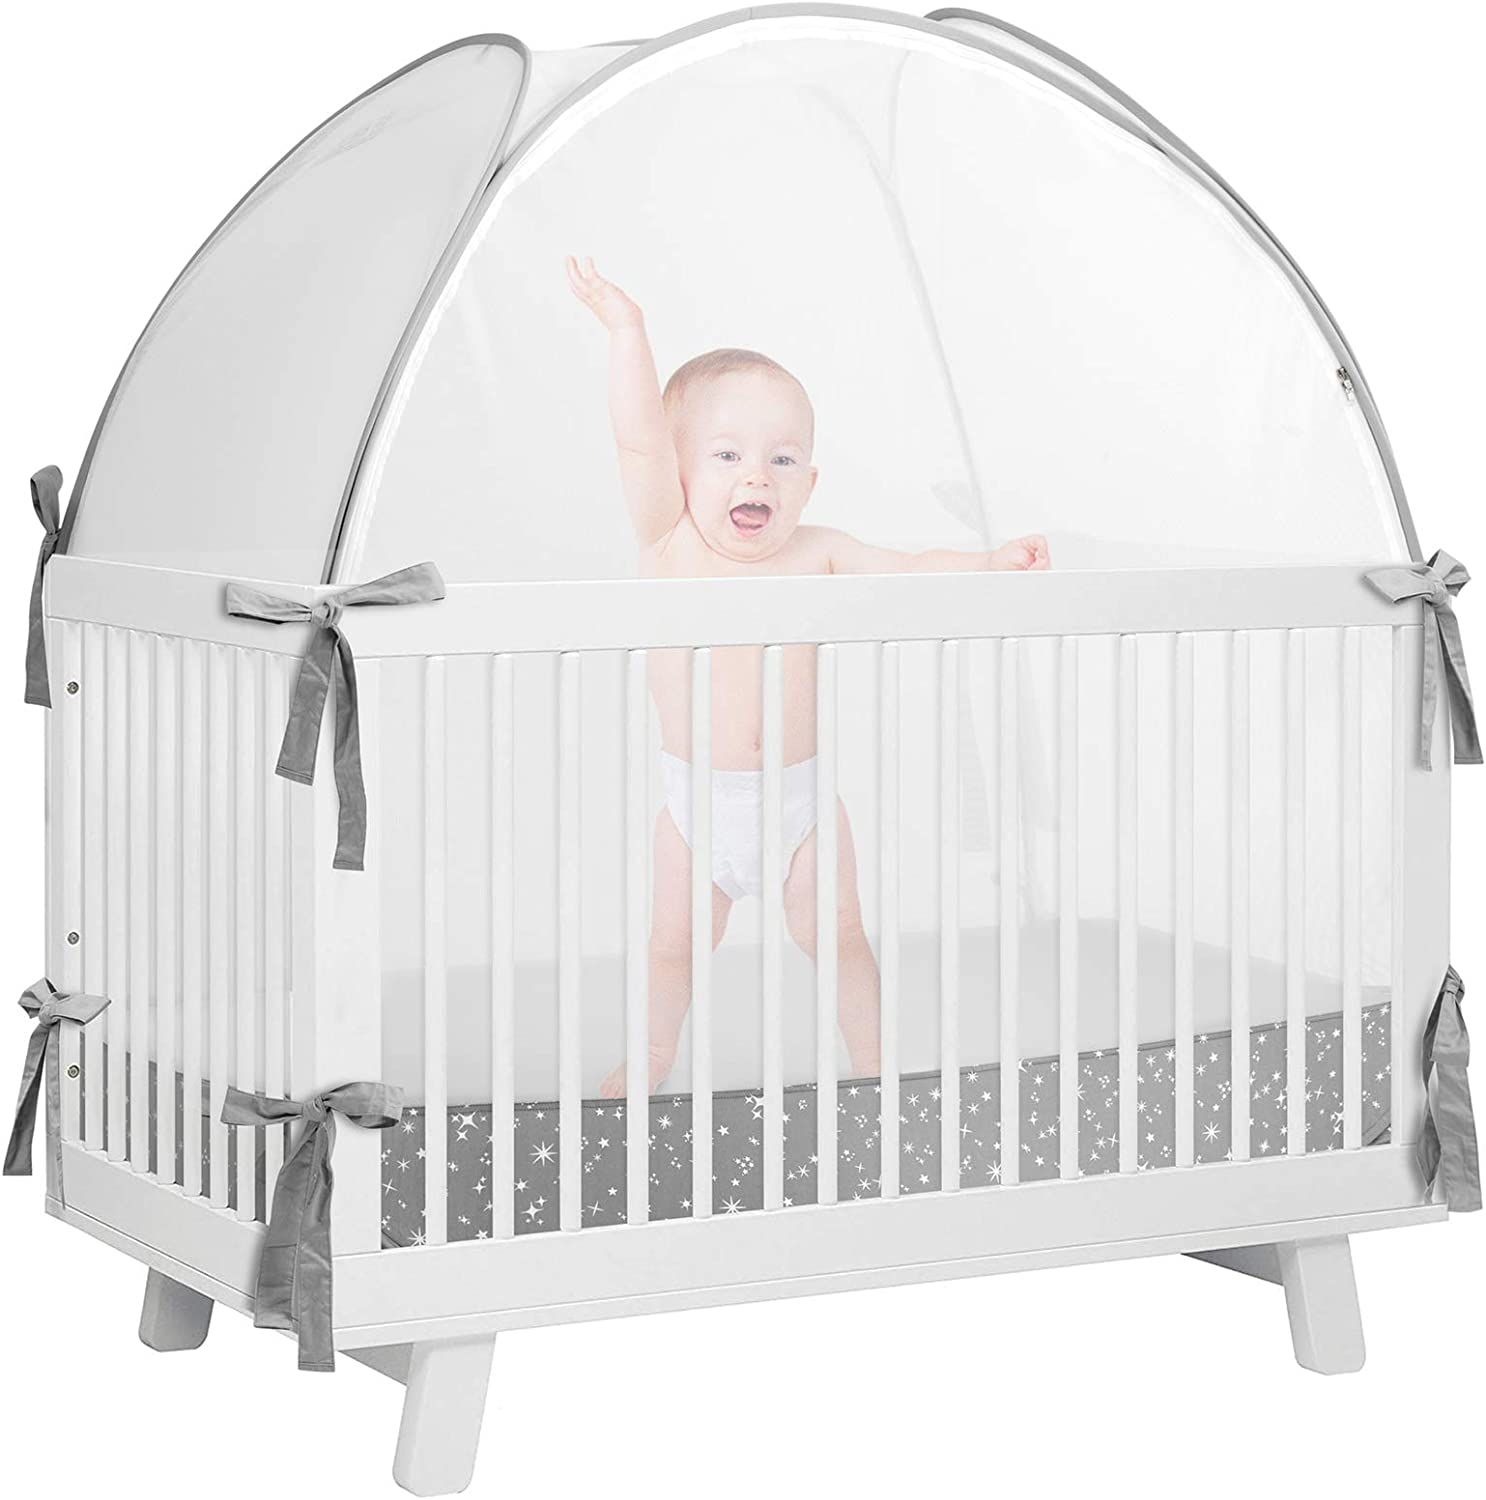 De-LOVELY Crib Pop Up Tent, Crib Tent ,Baby Mesh Cover Net,Crib Tent to Keep Baby from Climbing Out